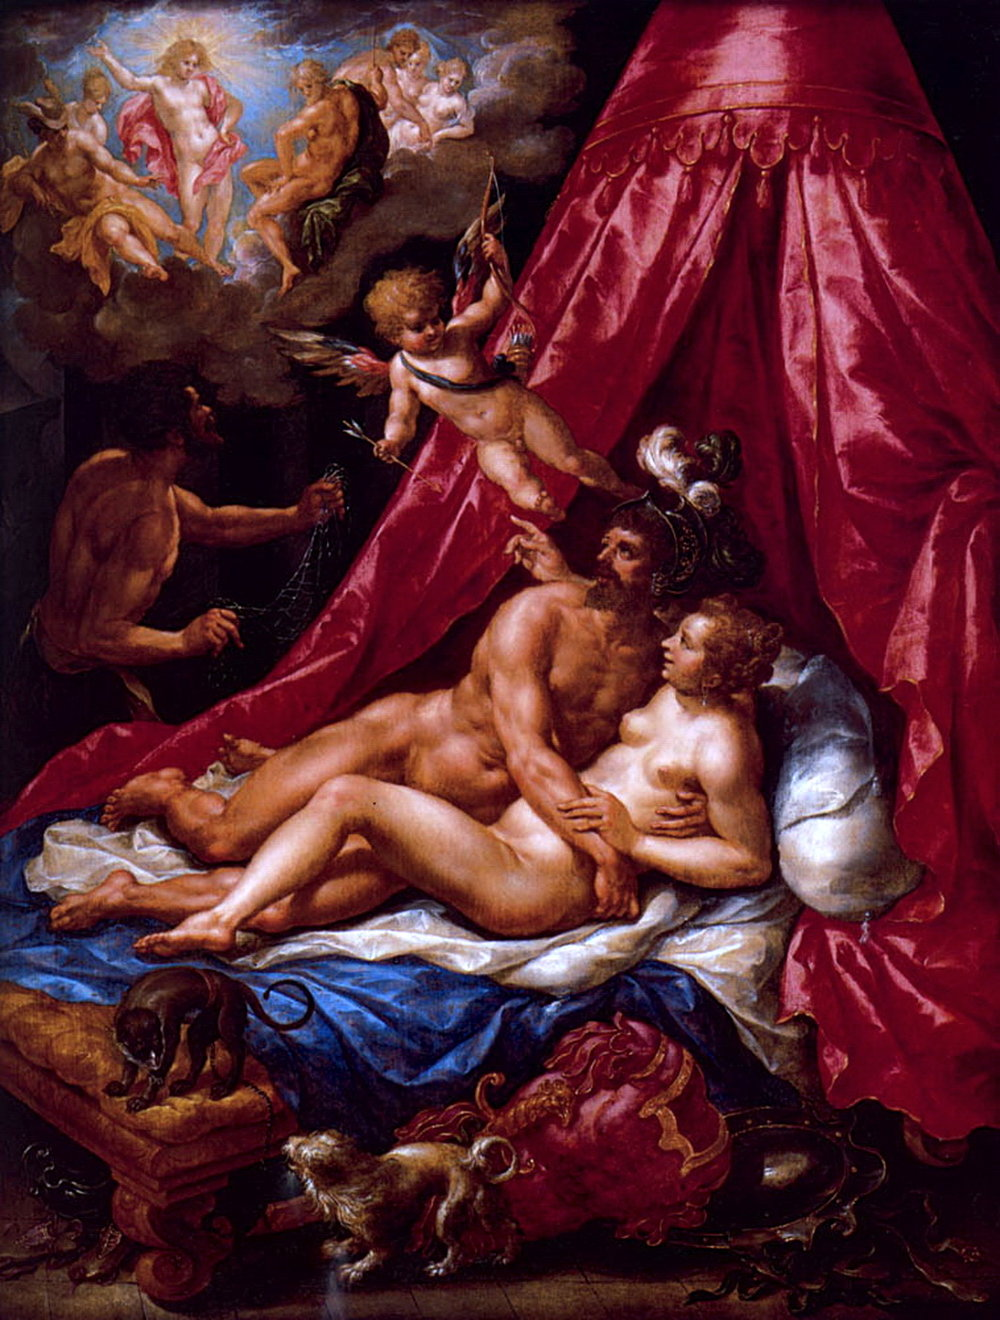 Mars_and_Venus_surprised_by_Apollo_-_Hendrik_de_Clerck_(1615).jpg